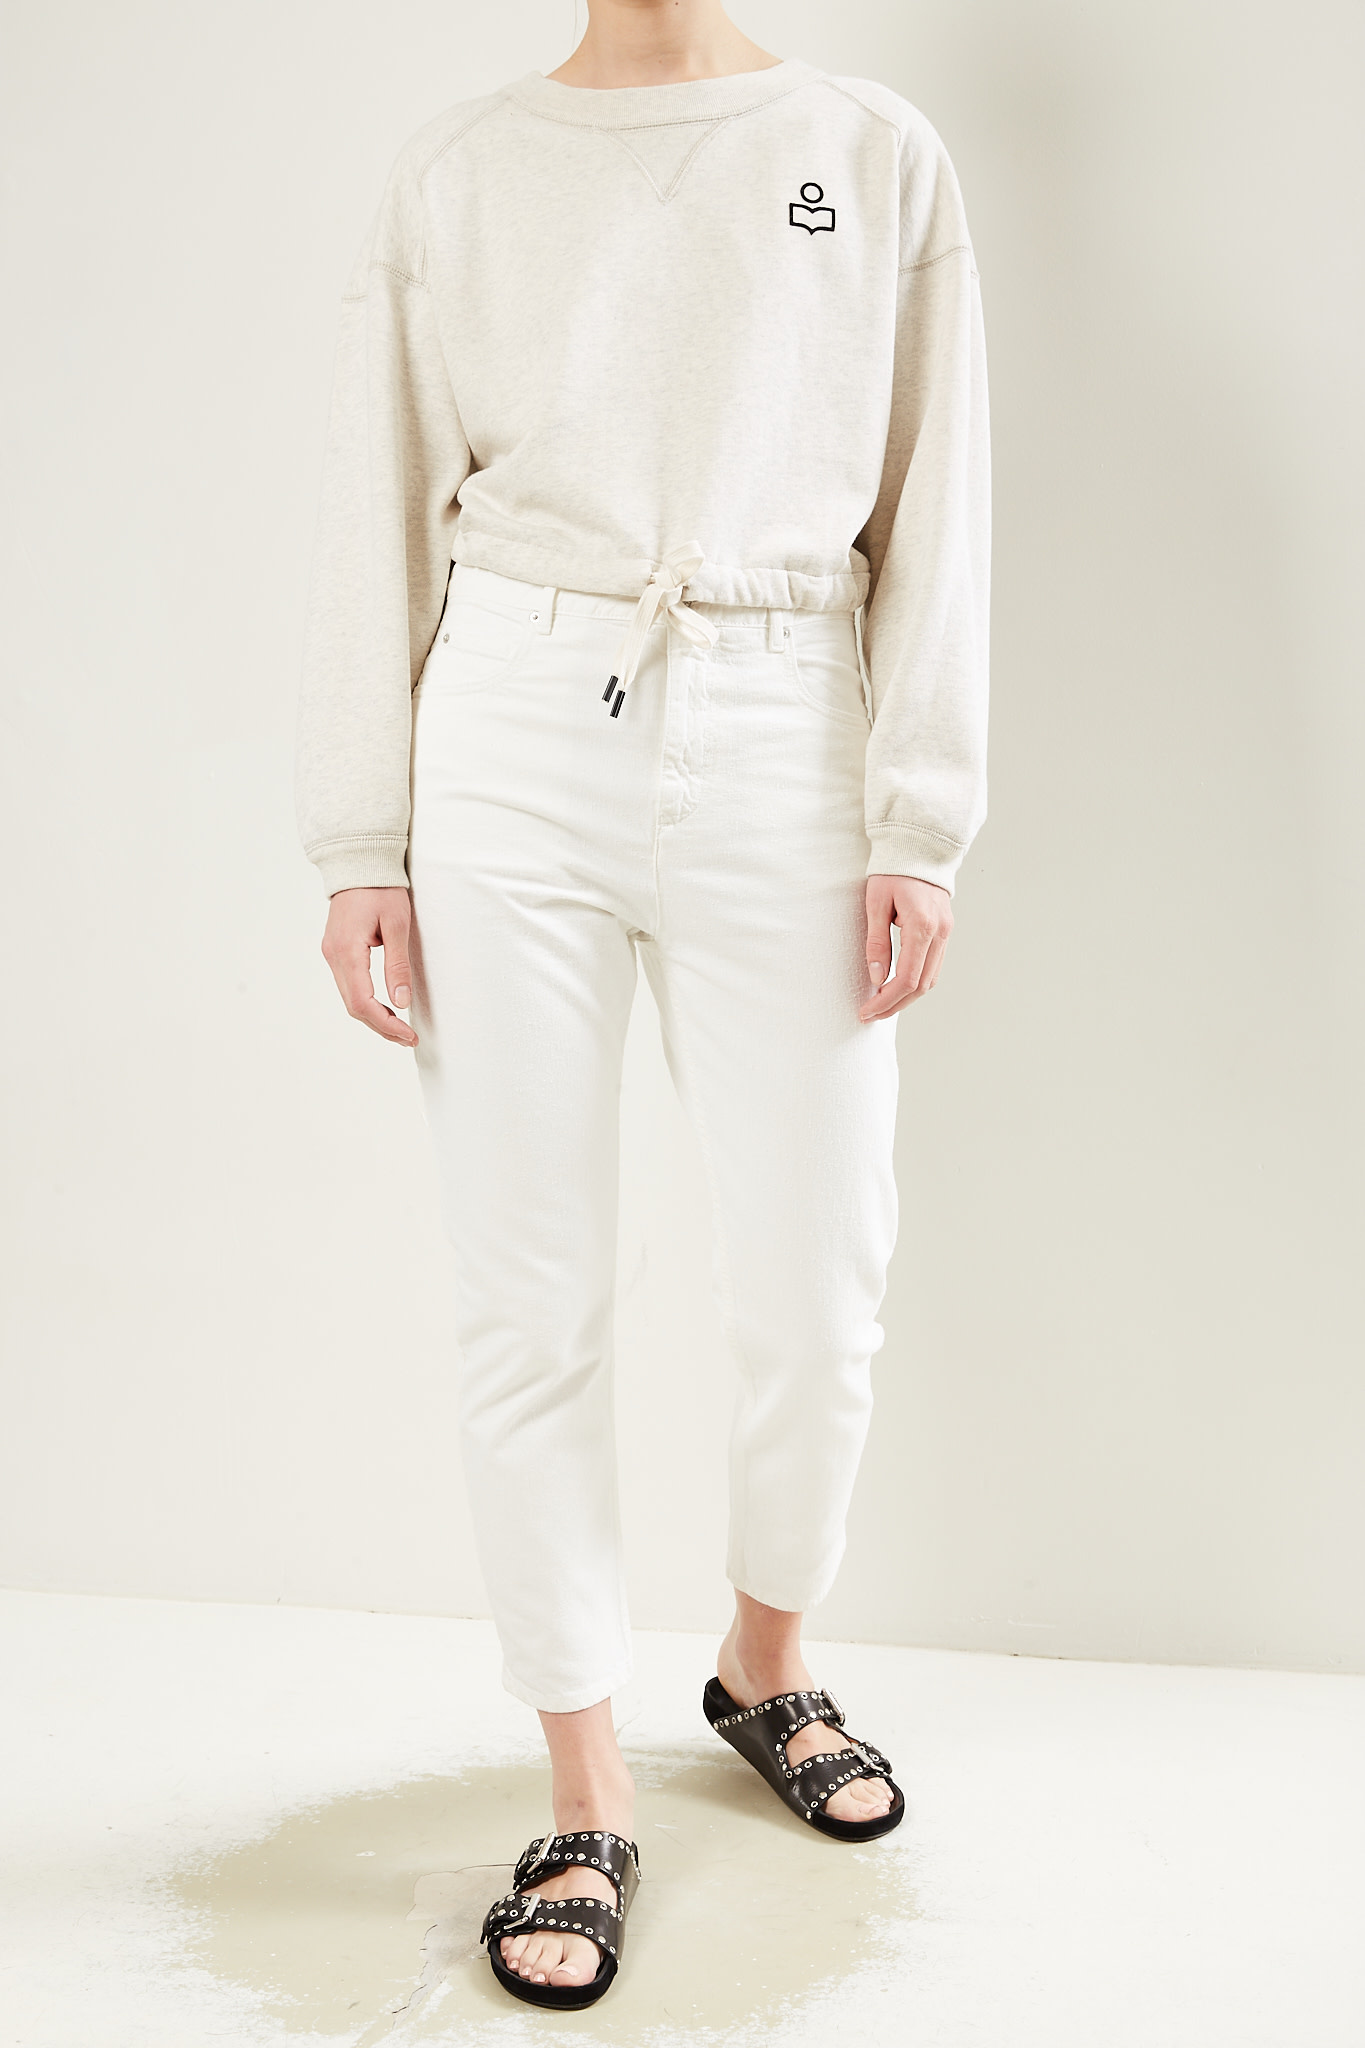 Etoile Isabel Marant Lanea colored jeans trousers